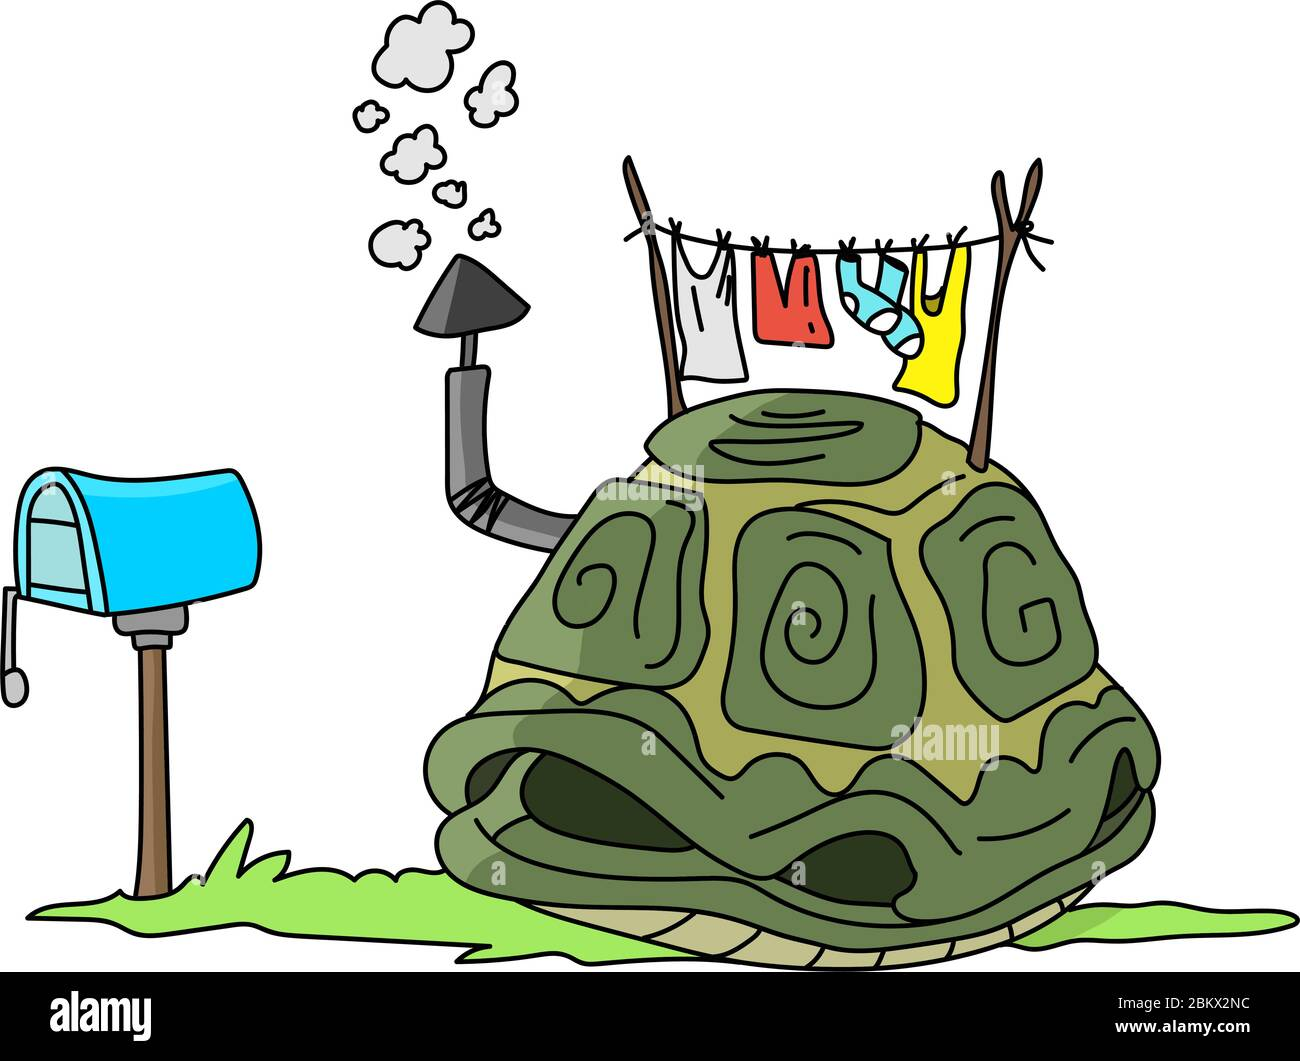 Cartoon Turtle Shell Like A House With A Smoking Chimney On The